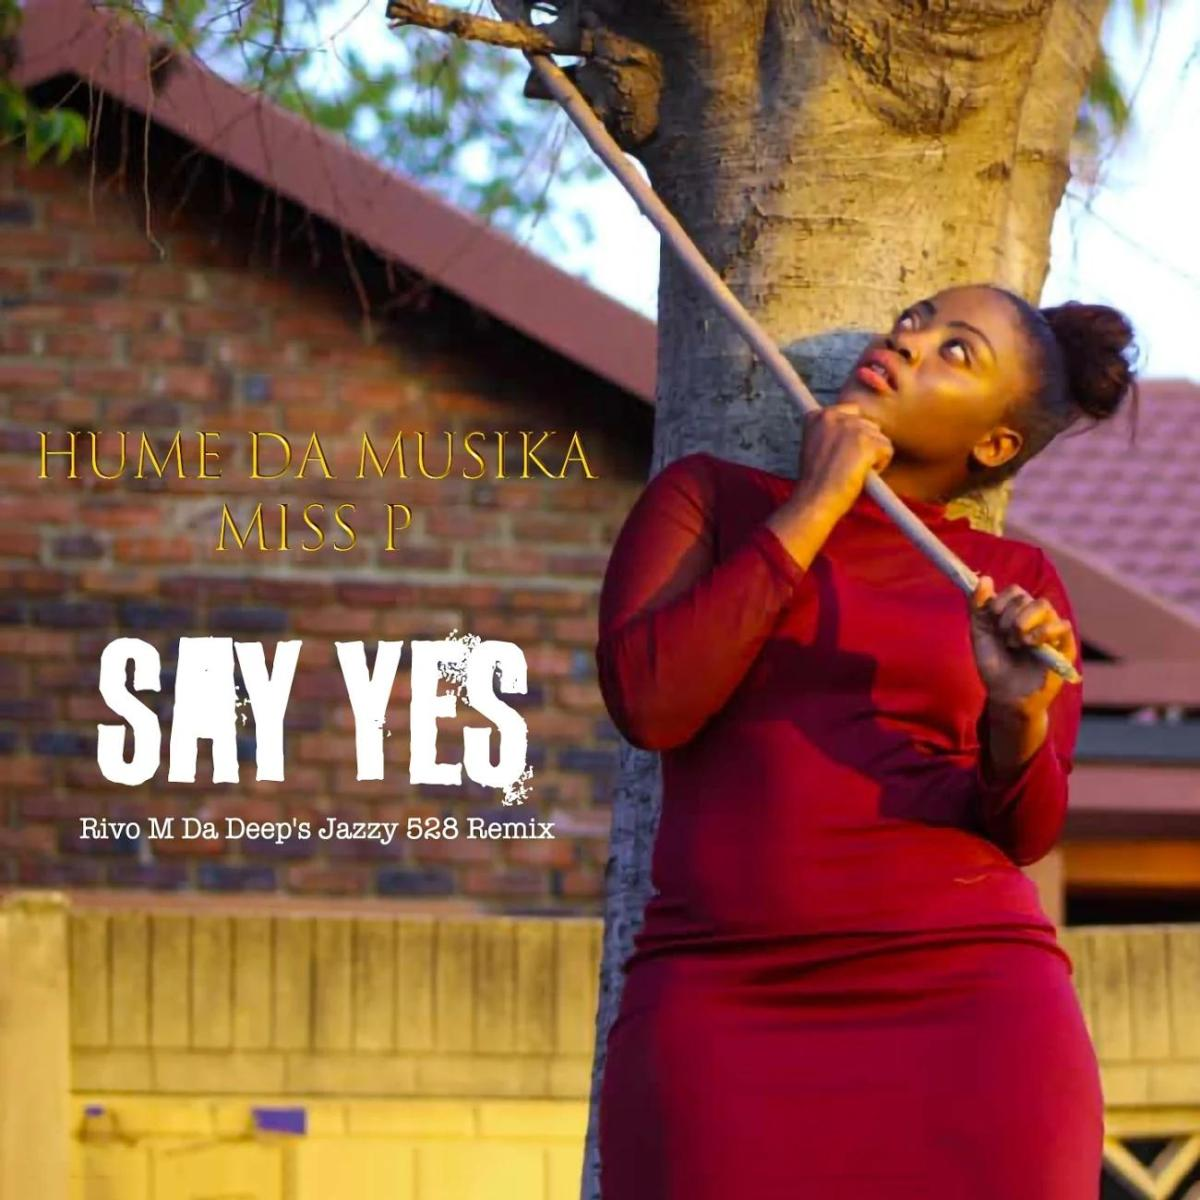 Hume Da Musika & Miss P - Say Yes (Rivo M Da Deep's Jazzy 528 Remix)